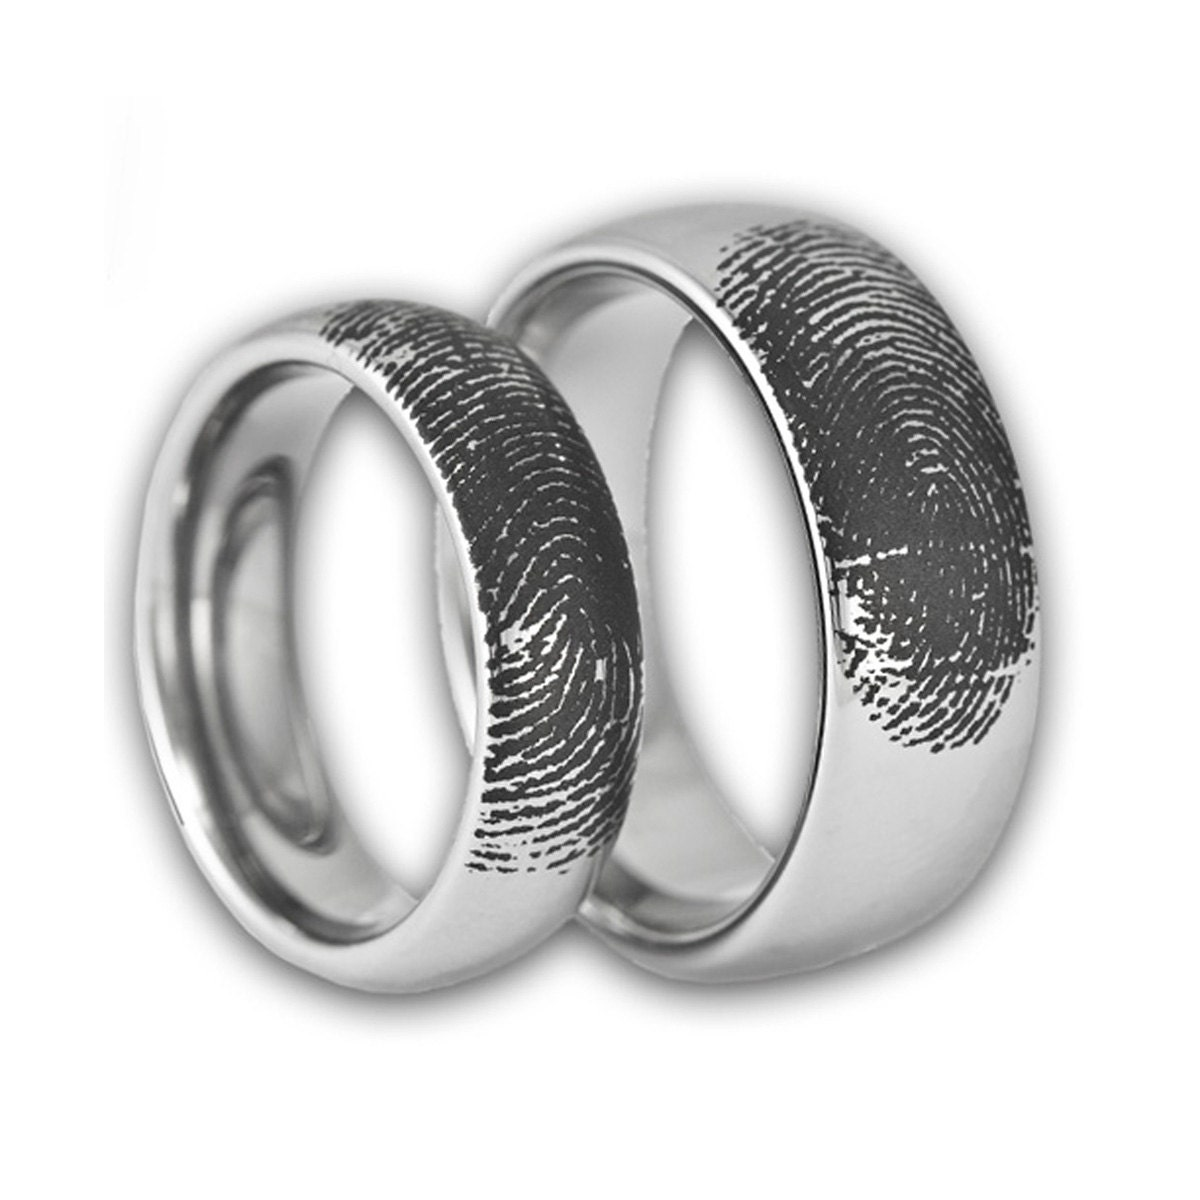 wedding bands engraved of ring sterling apples silver band i gold s men paisley